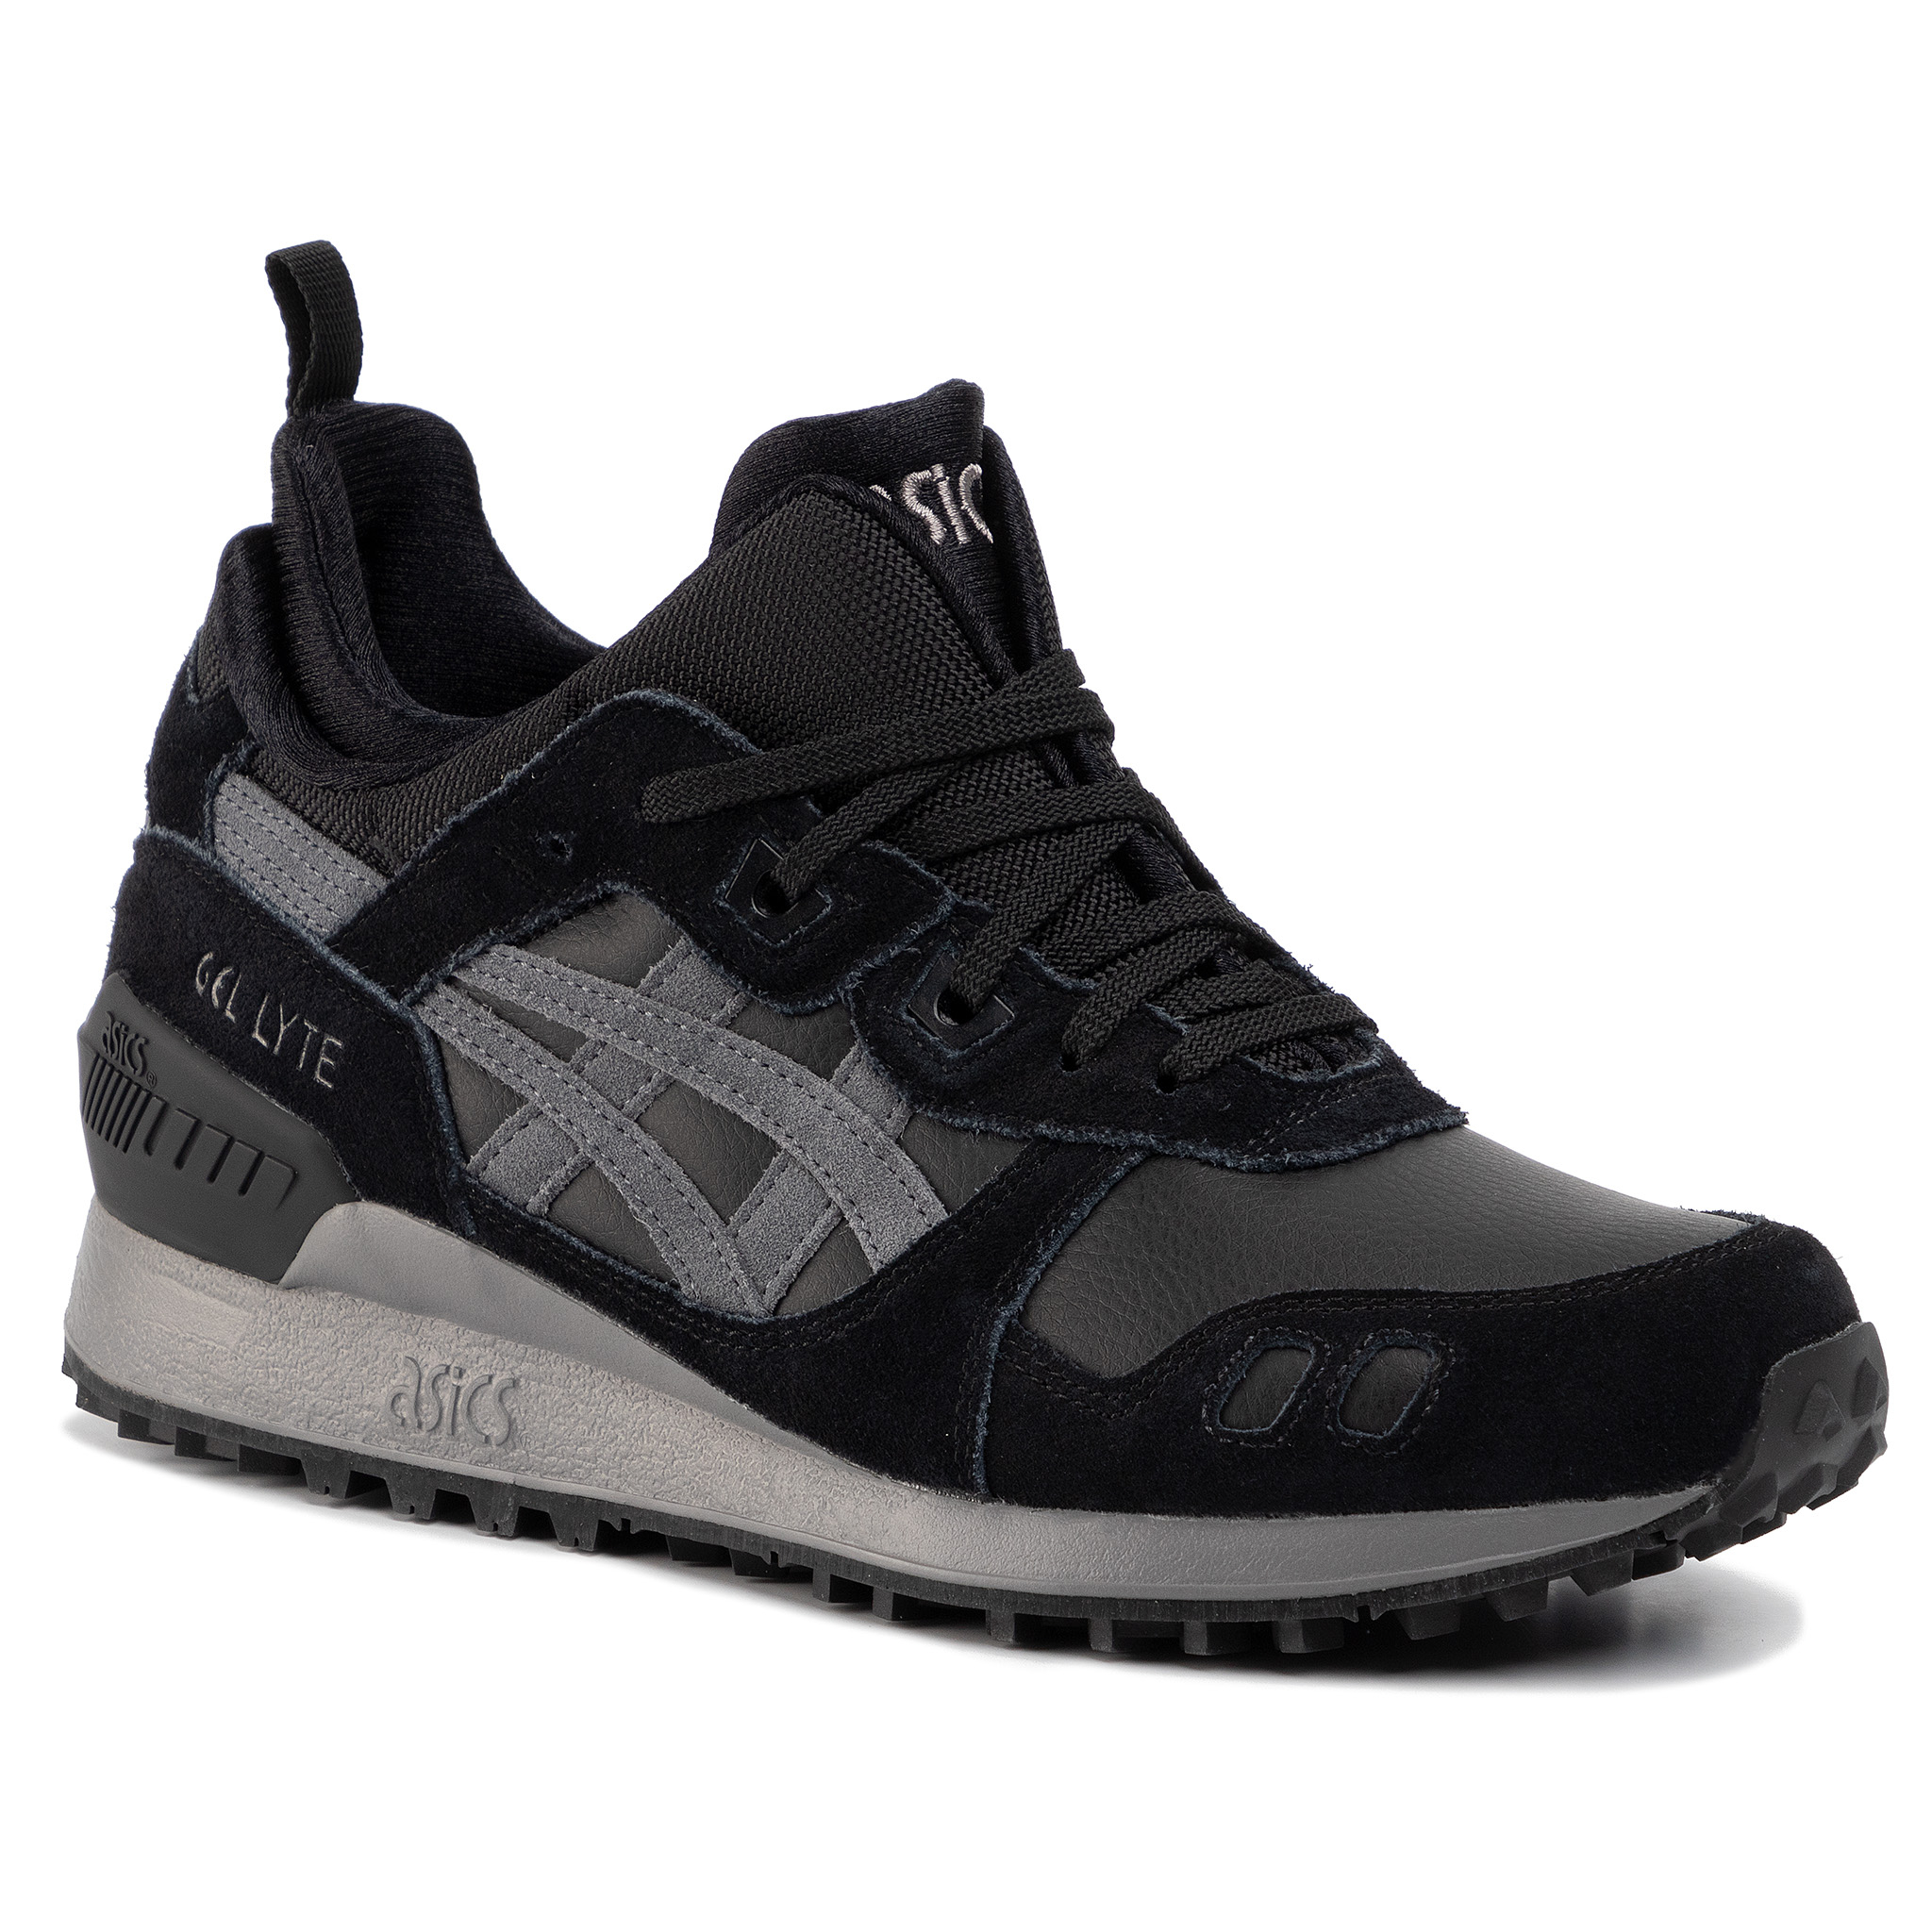 Sneaker Asics Sneakers ASICS - Gel-Lyte Mt 1193A035 Black/Dark Grey 001